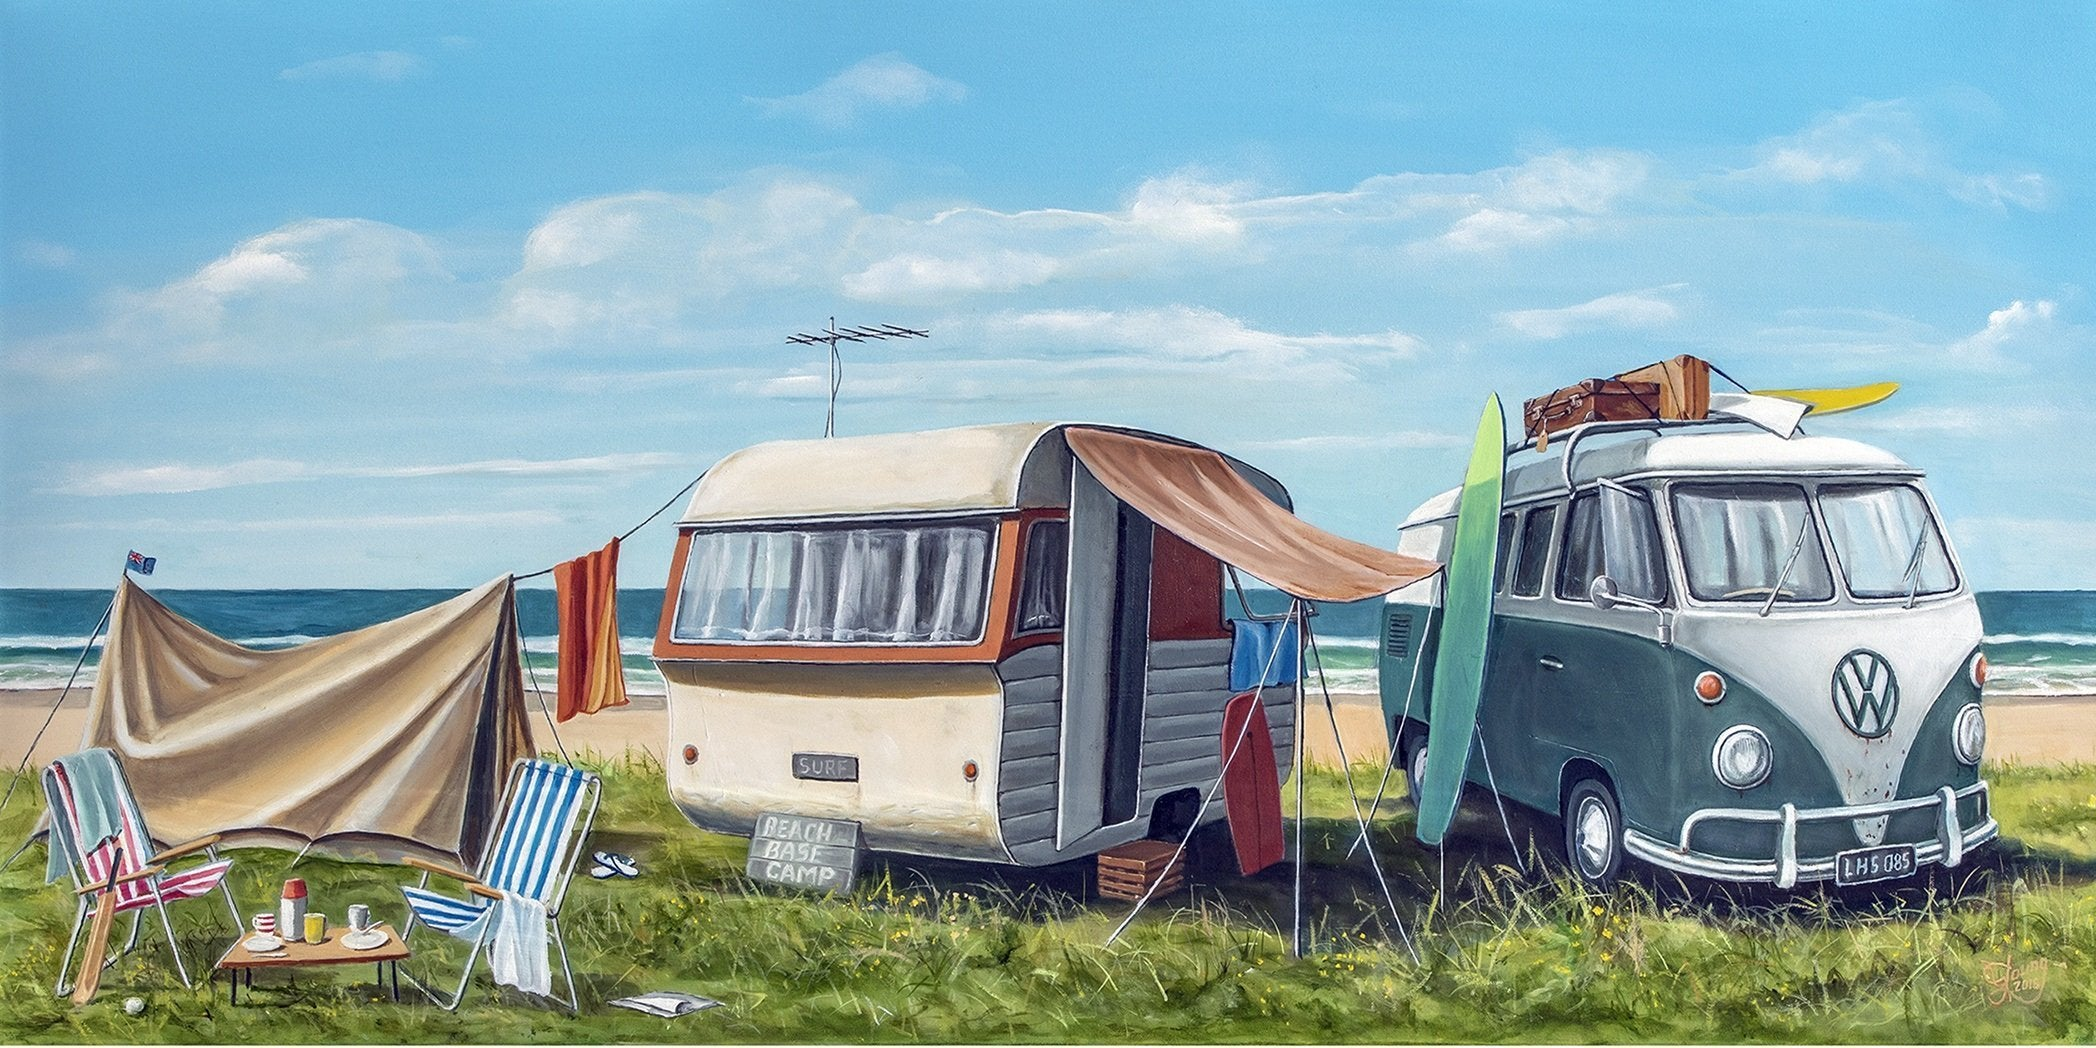 Beach Base Camp - grahamyoungartist.com - Original Artwork and Prints by New Zealand Artist Graham Young